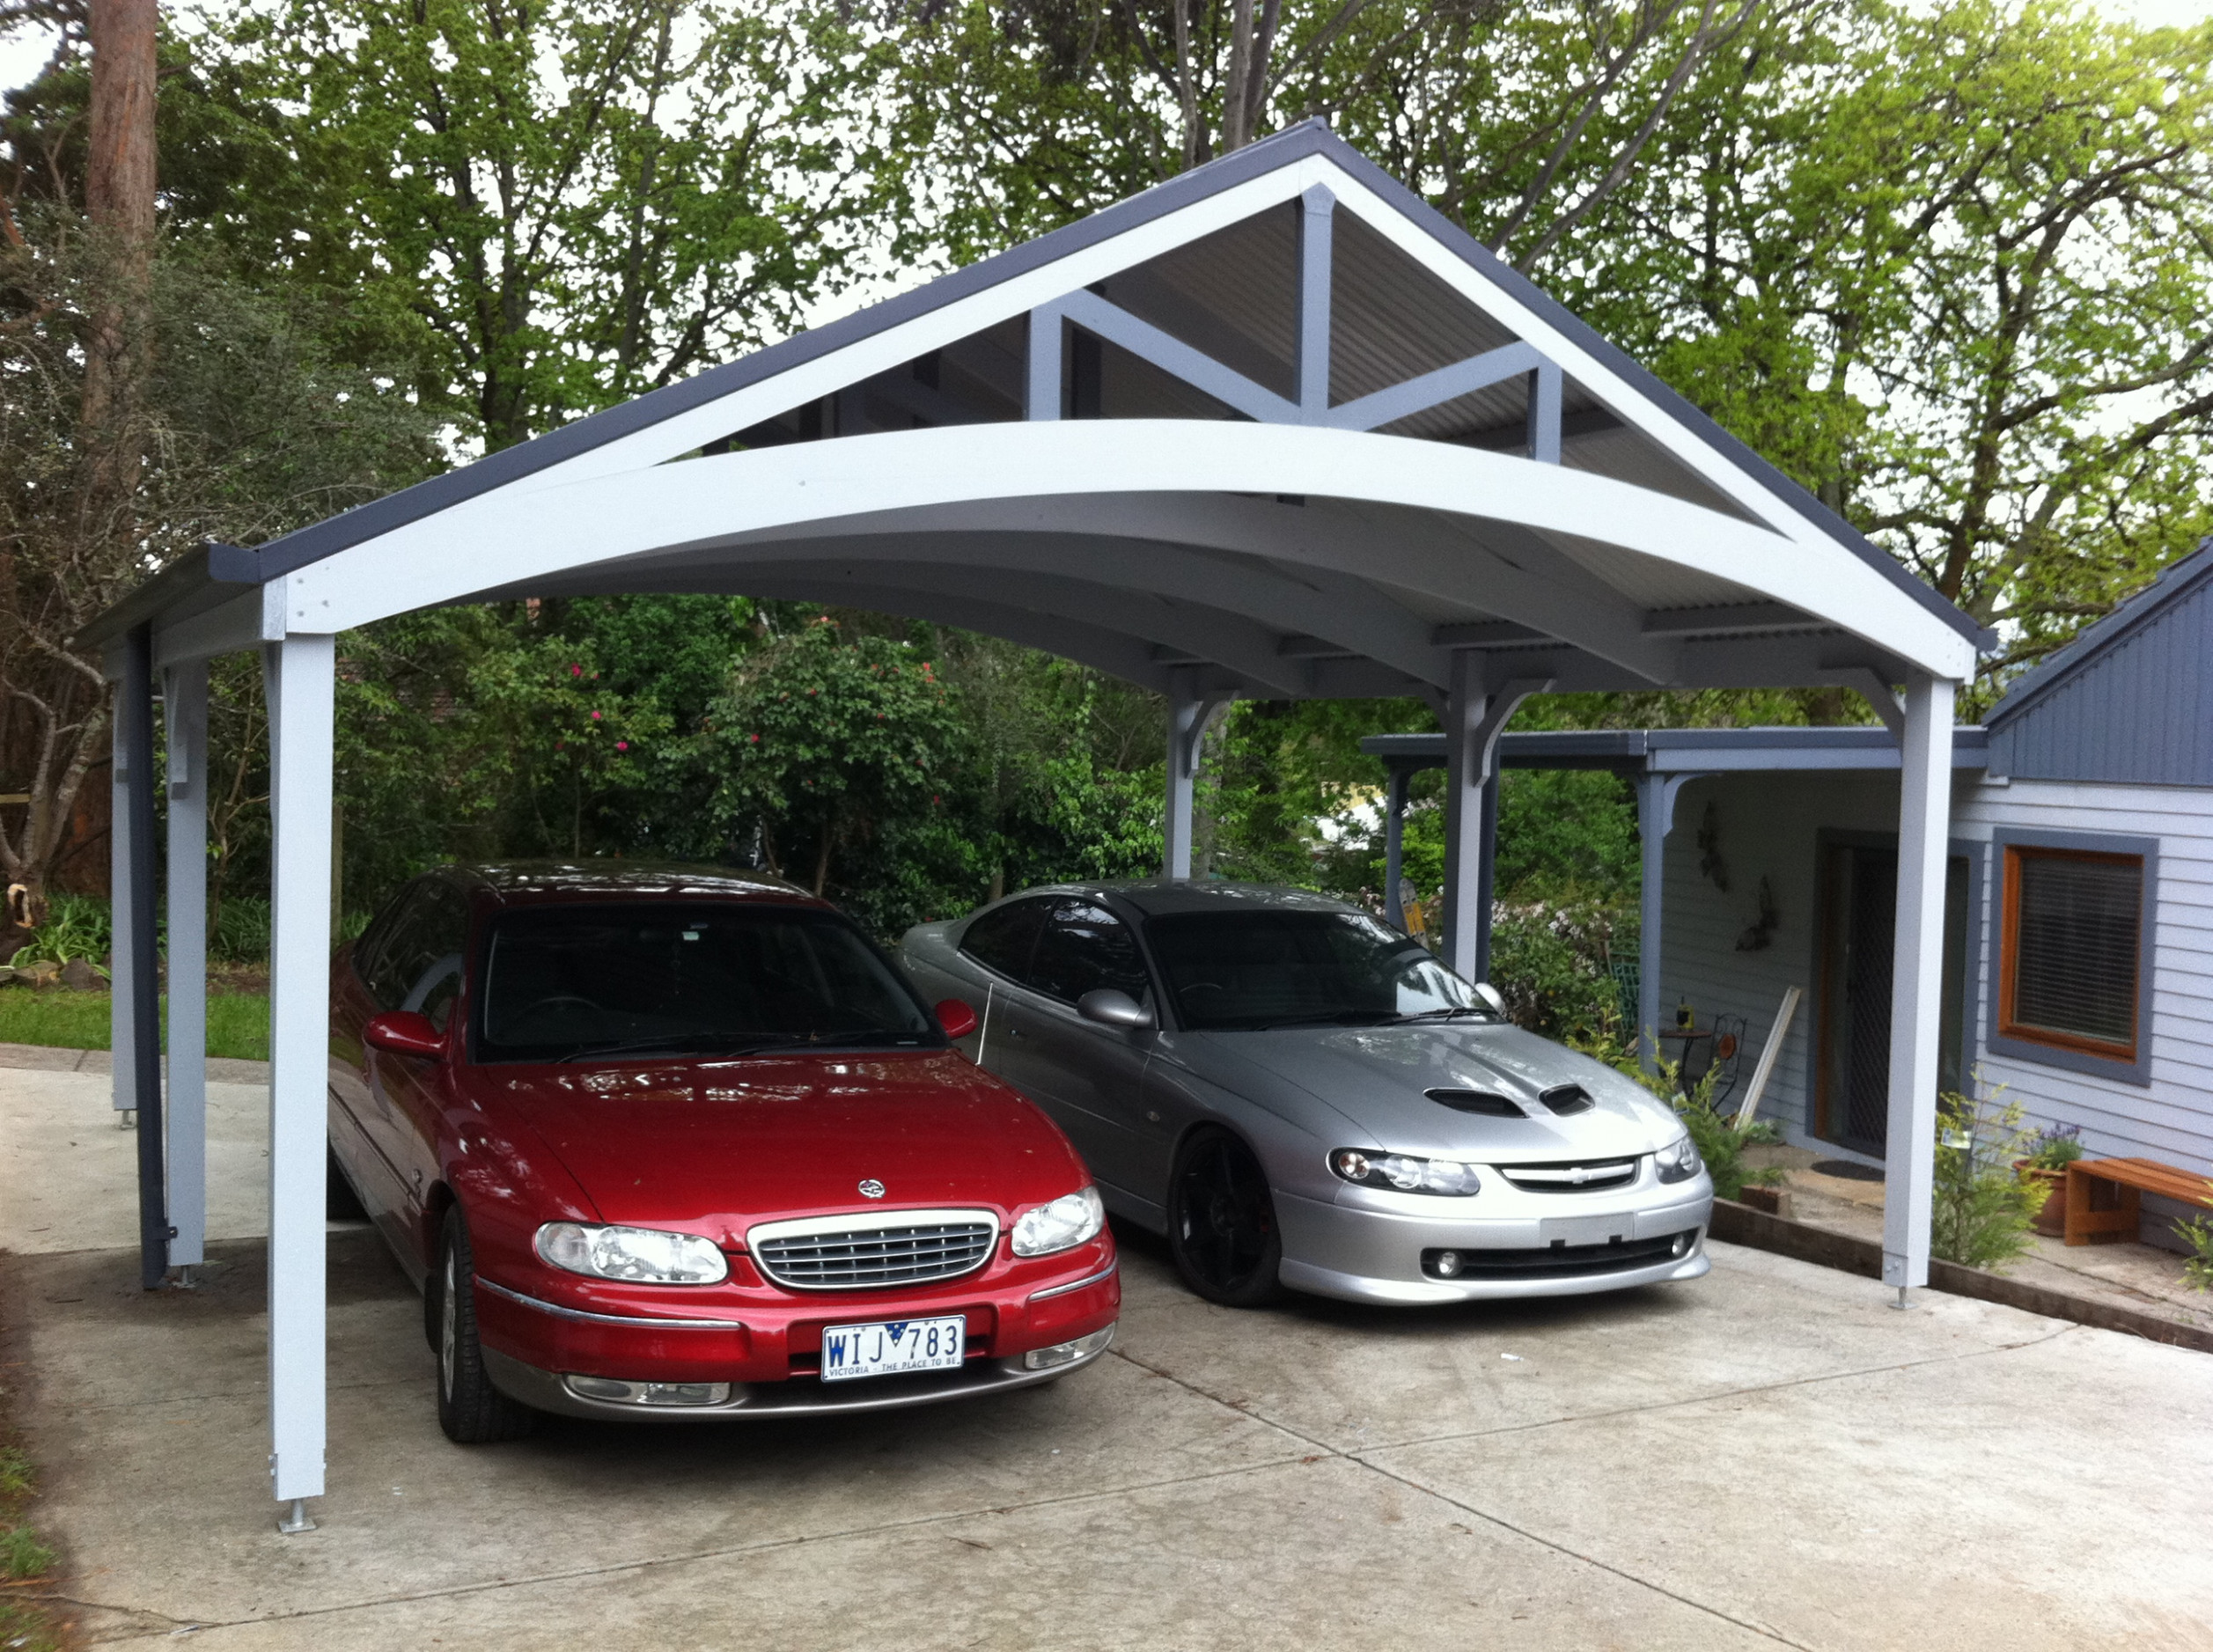 Carport Kits Timber Carports Cost Of Wooden Carport.jpg